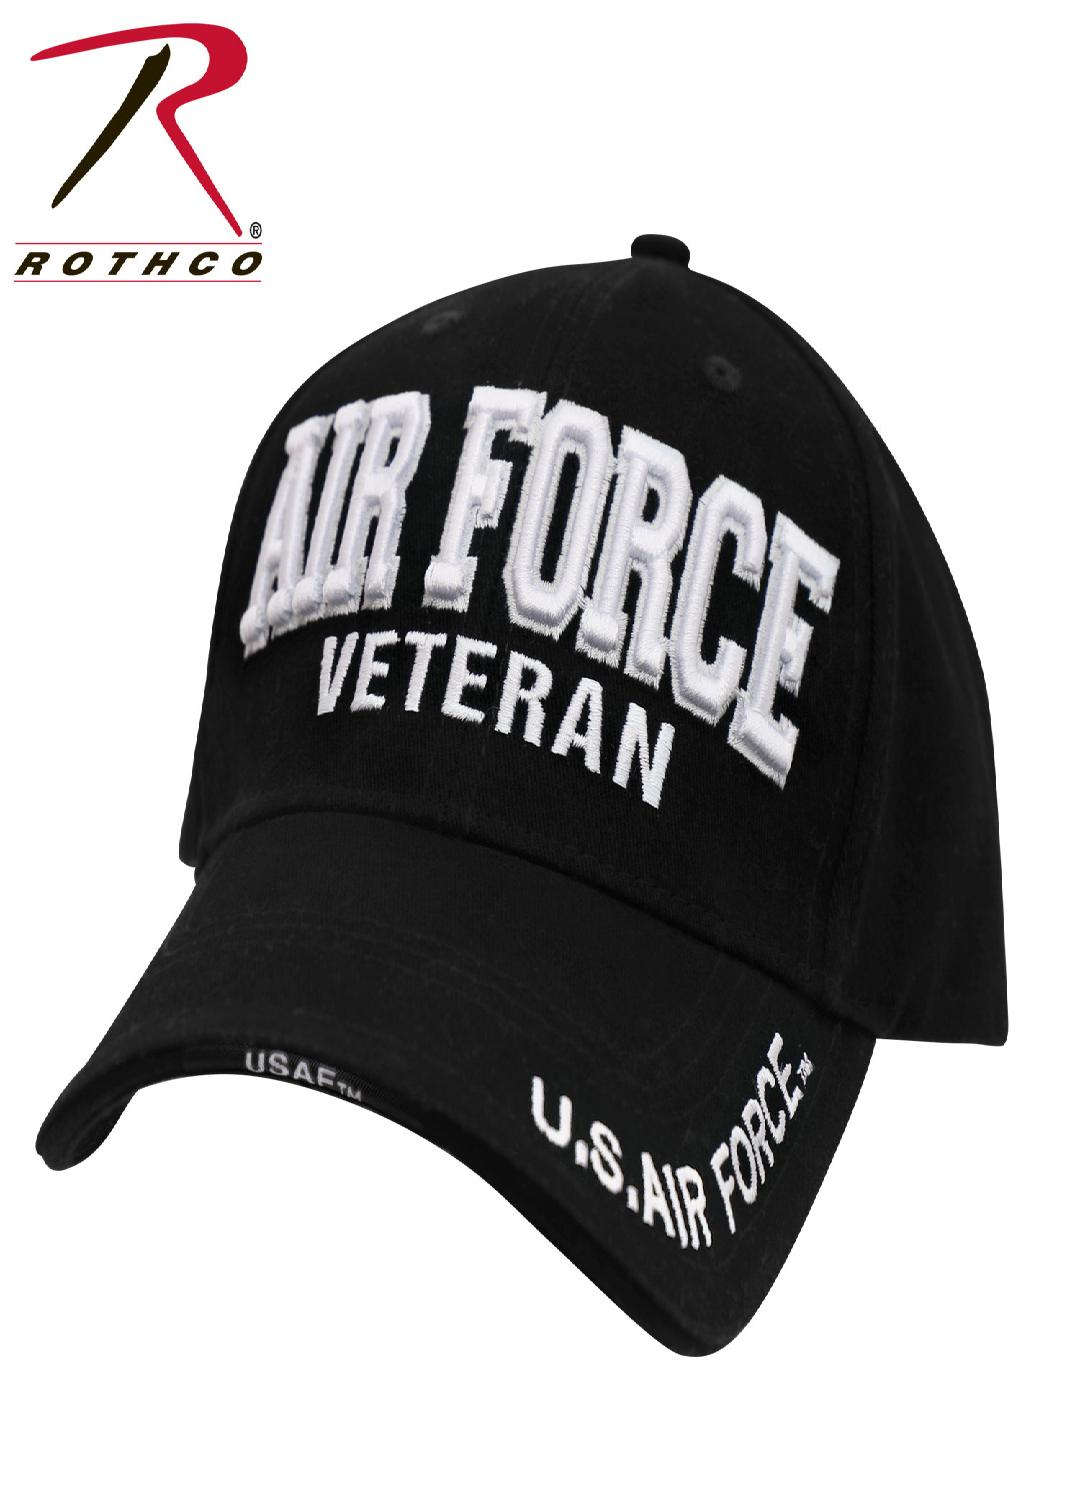 Rothco Deluxe Low Profile Military Branch Veteran Cap